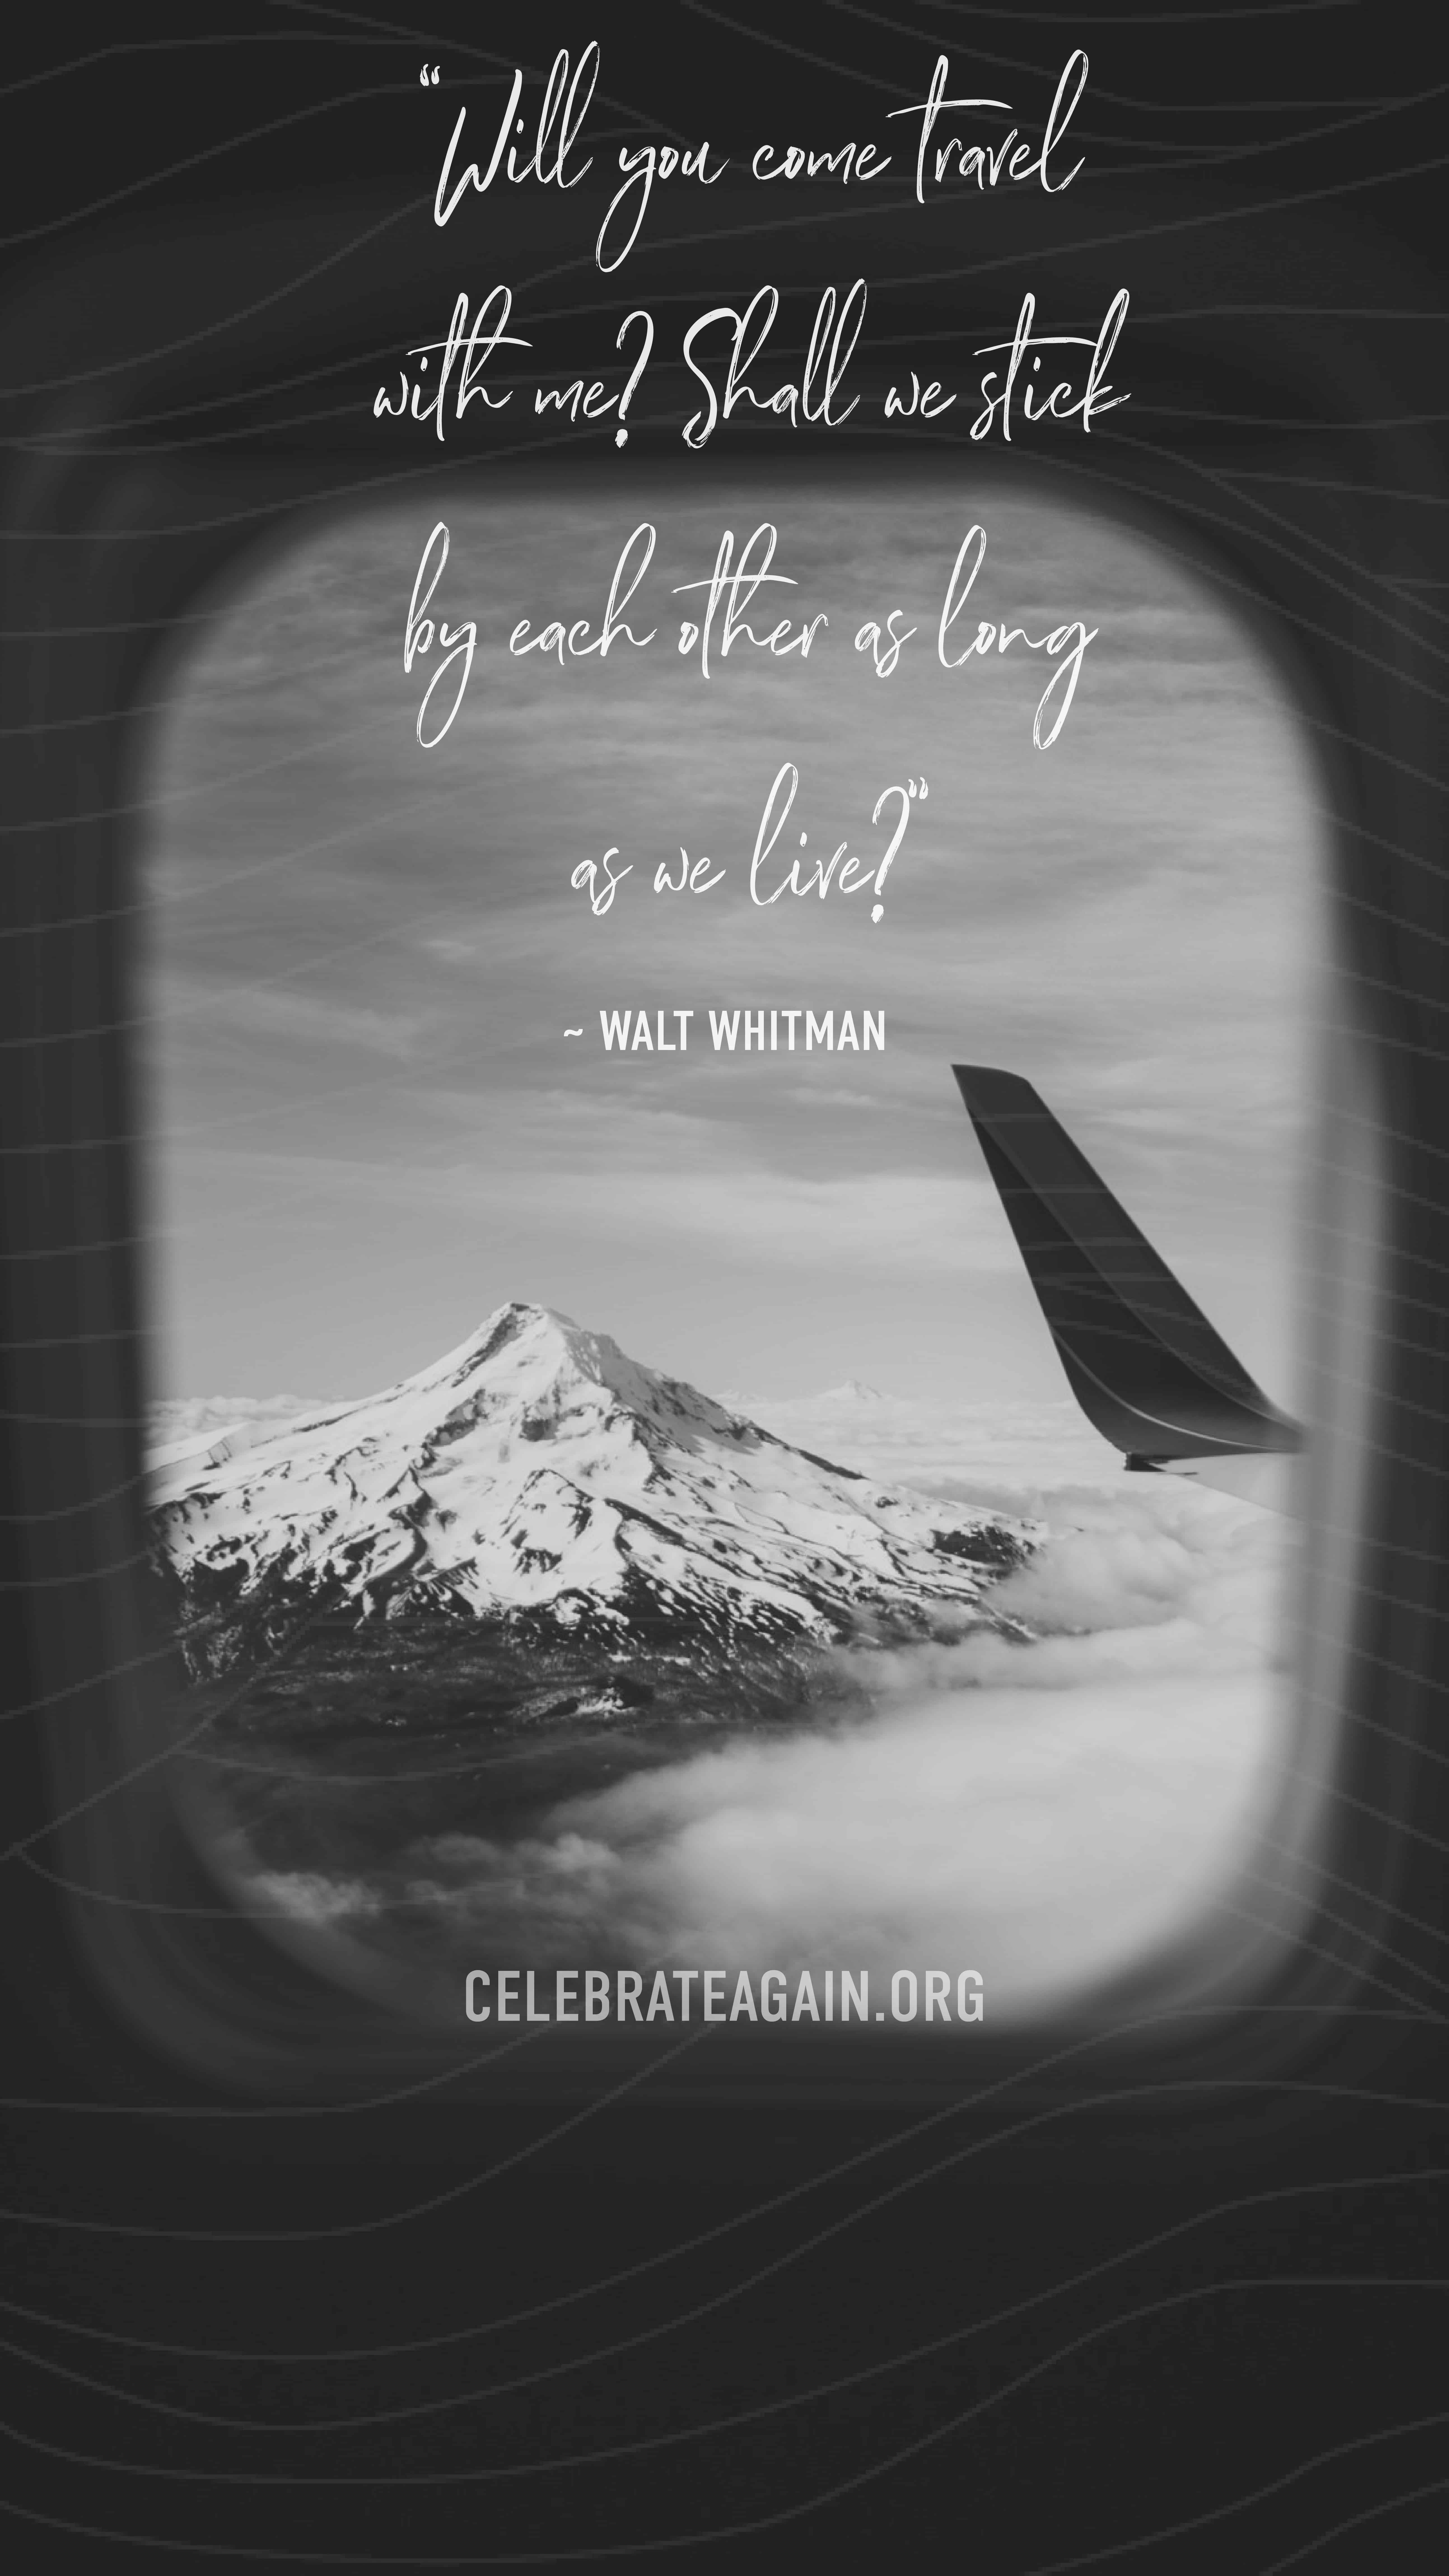 """unconditional love quotes for her """"Will you come travel with me? Shall we stick by each other as long as we live?"""" Walt Whitman image of most hood form an airplane window with the wing in view image by celebrateagain"""